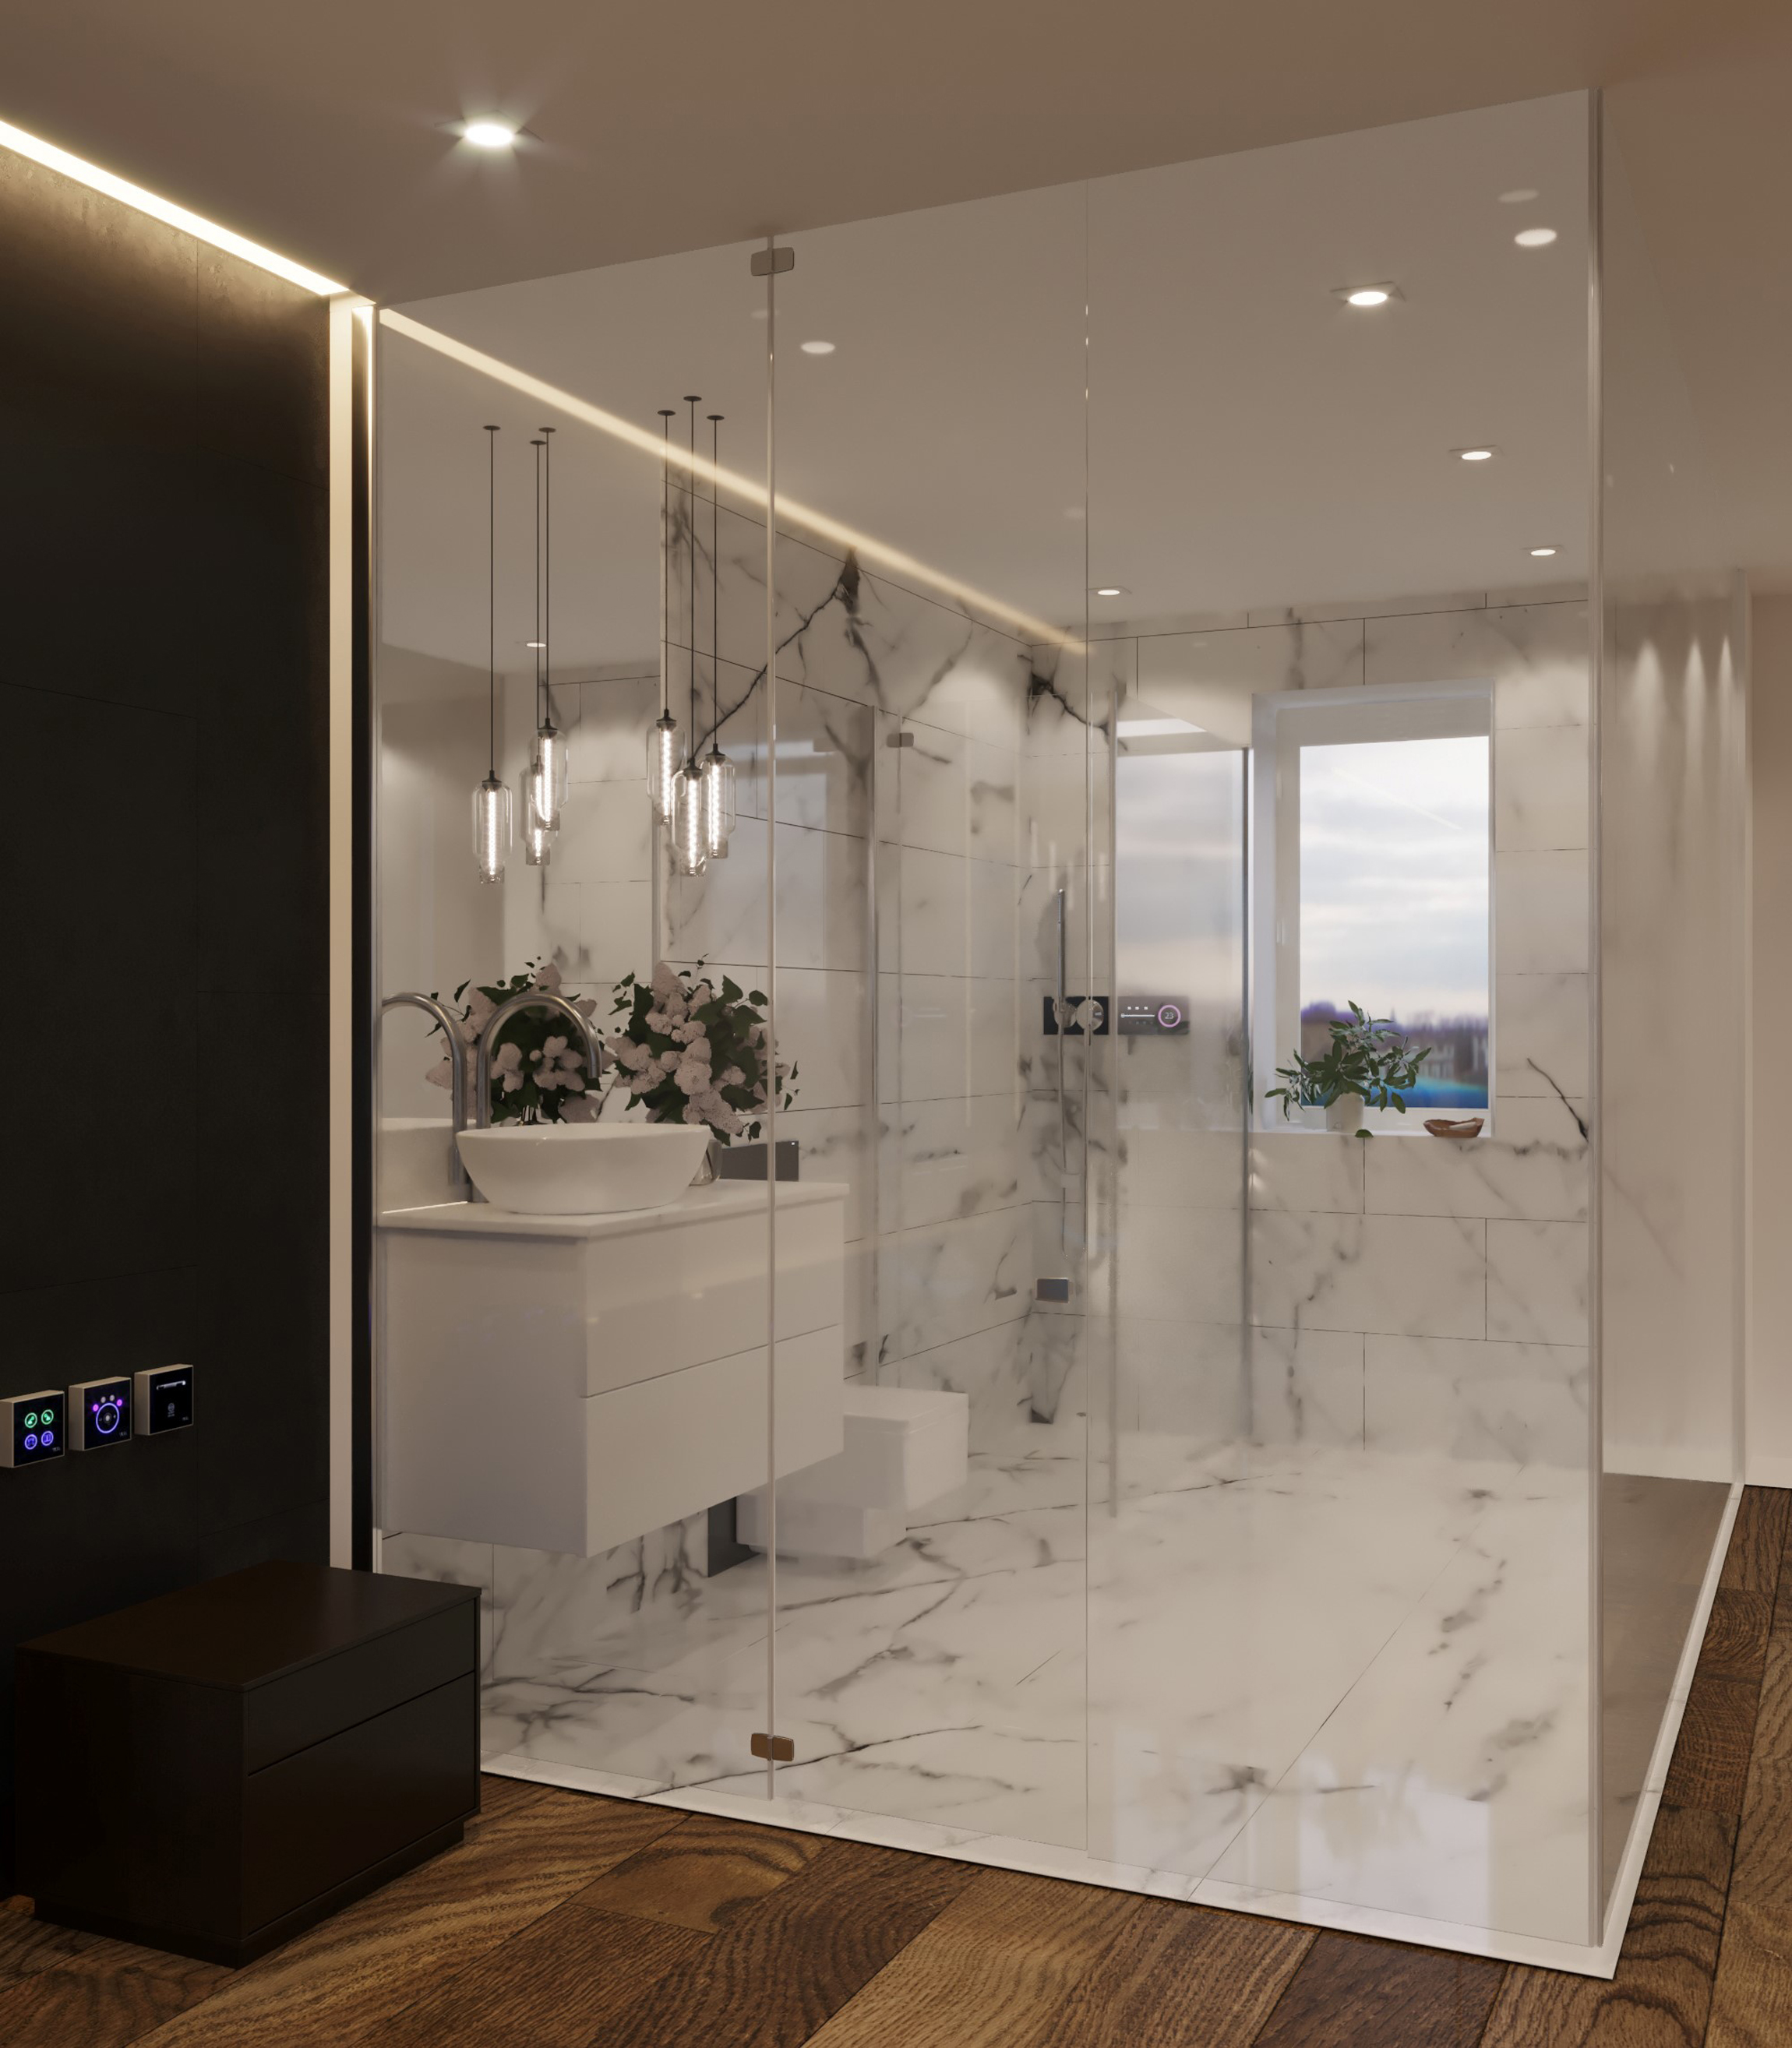 A hotel shower of the future